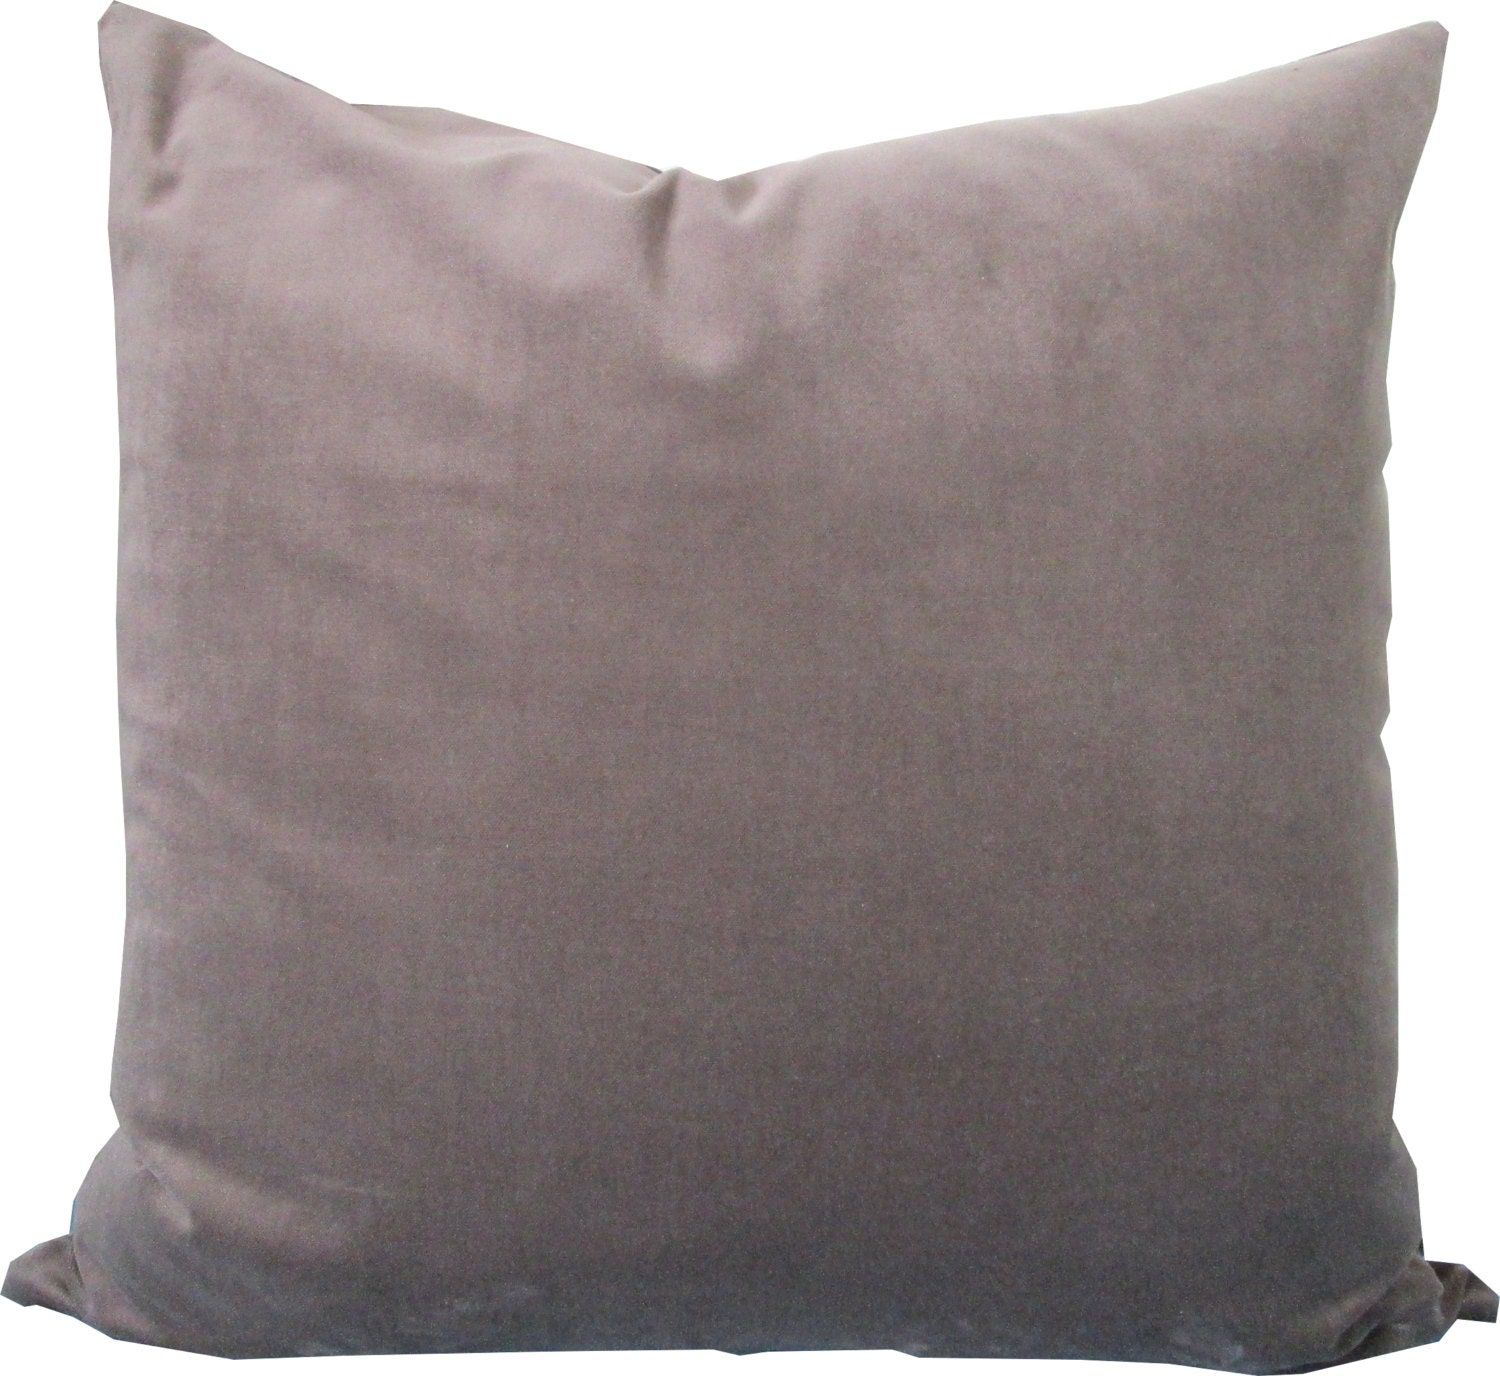 Throw Pillows Taupe : Decorative Pillow Cover-Velvet Taupe-Gray-Accent by KLineDeco